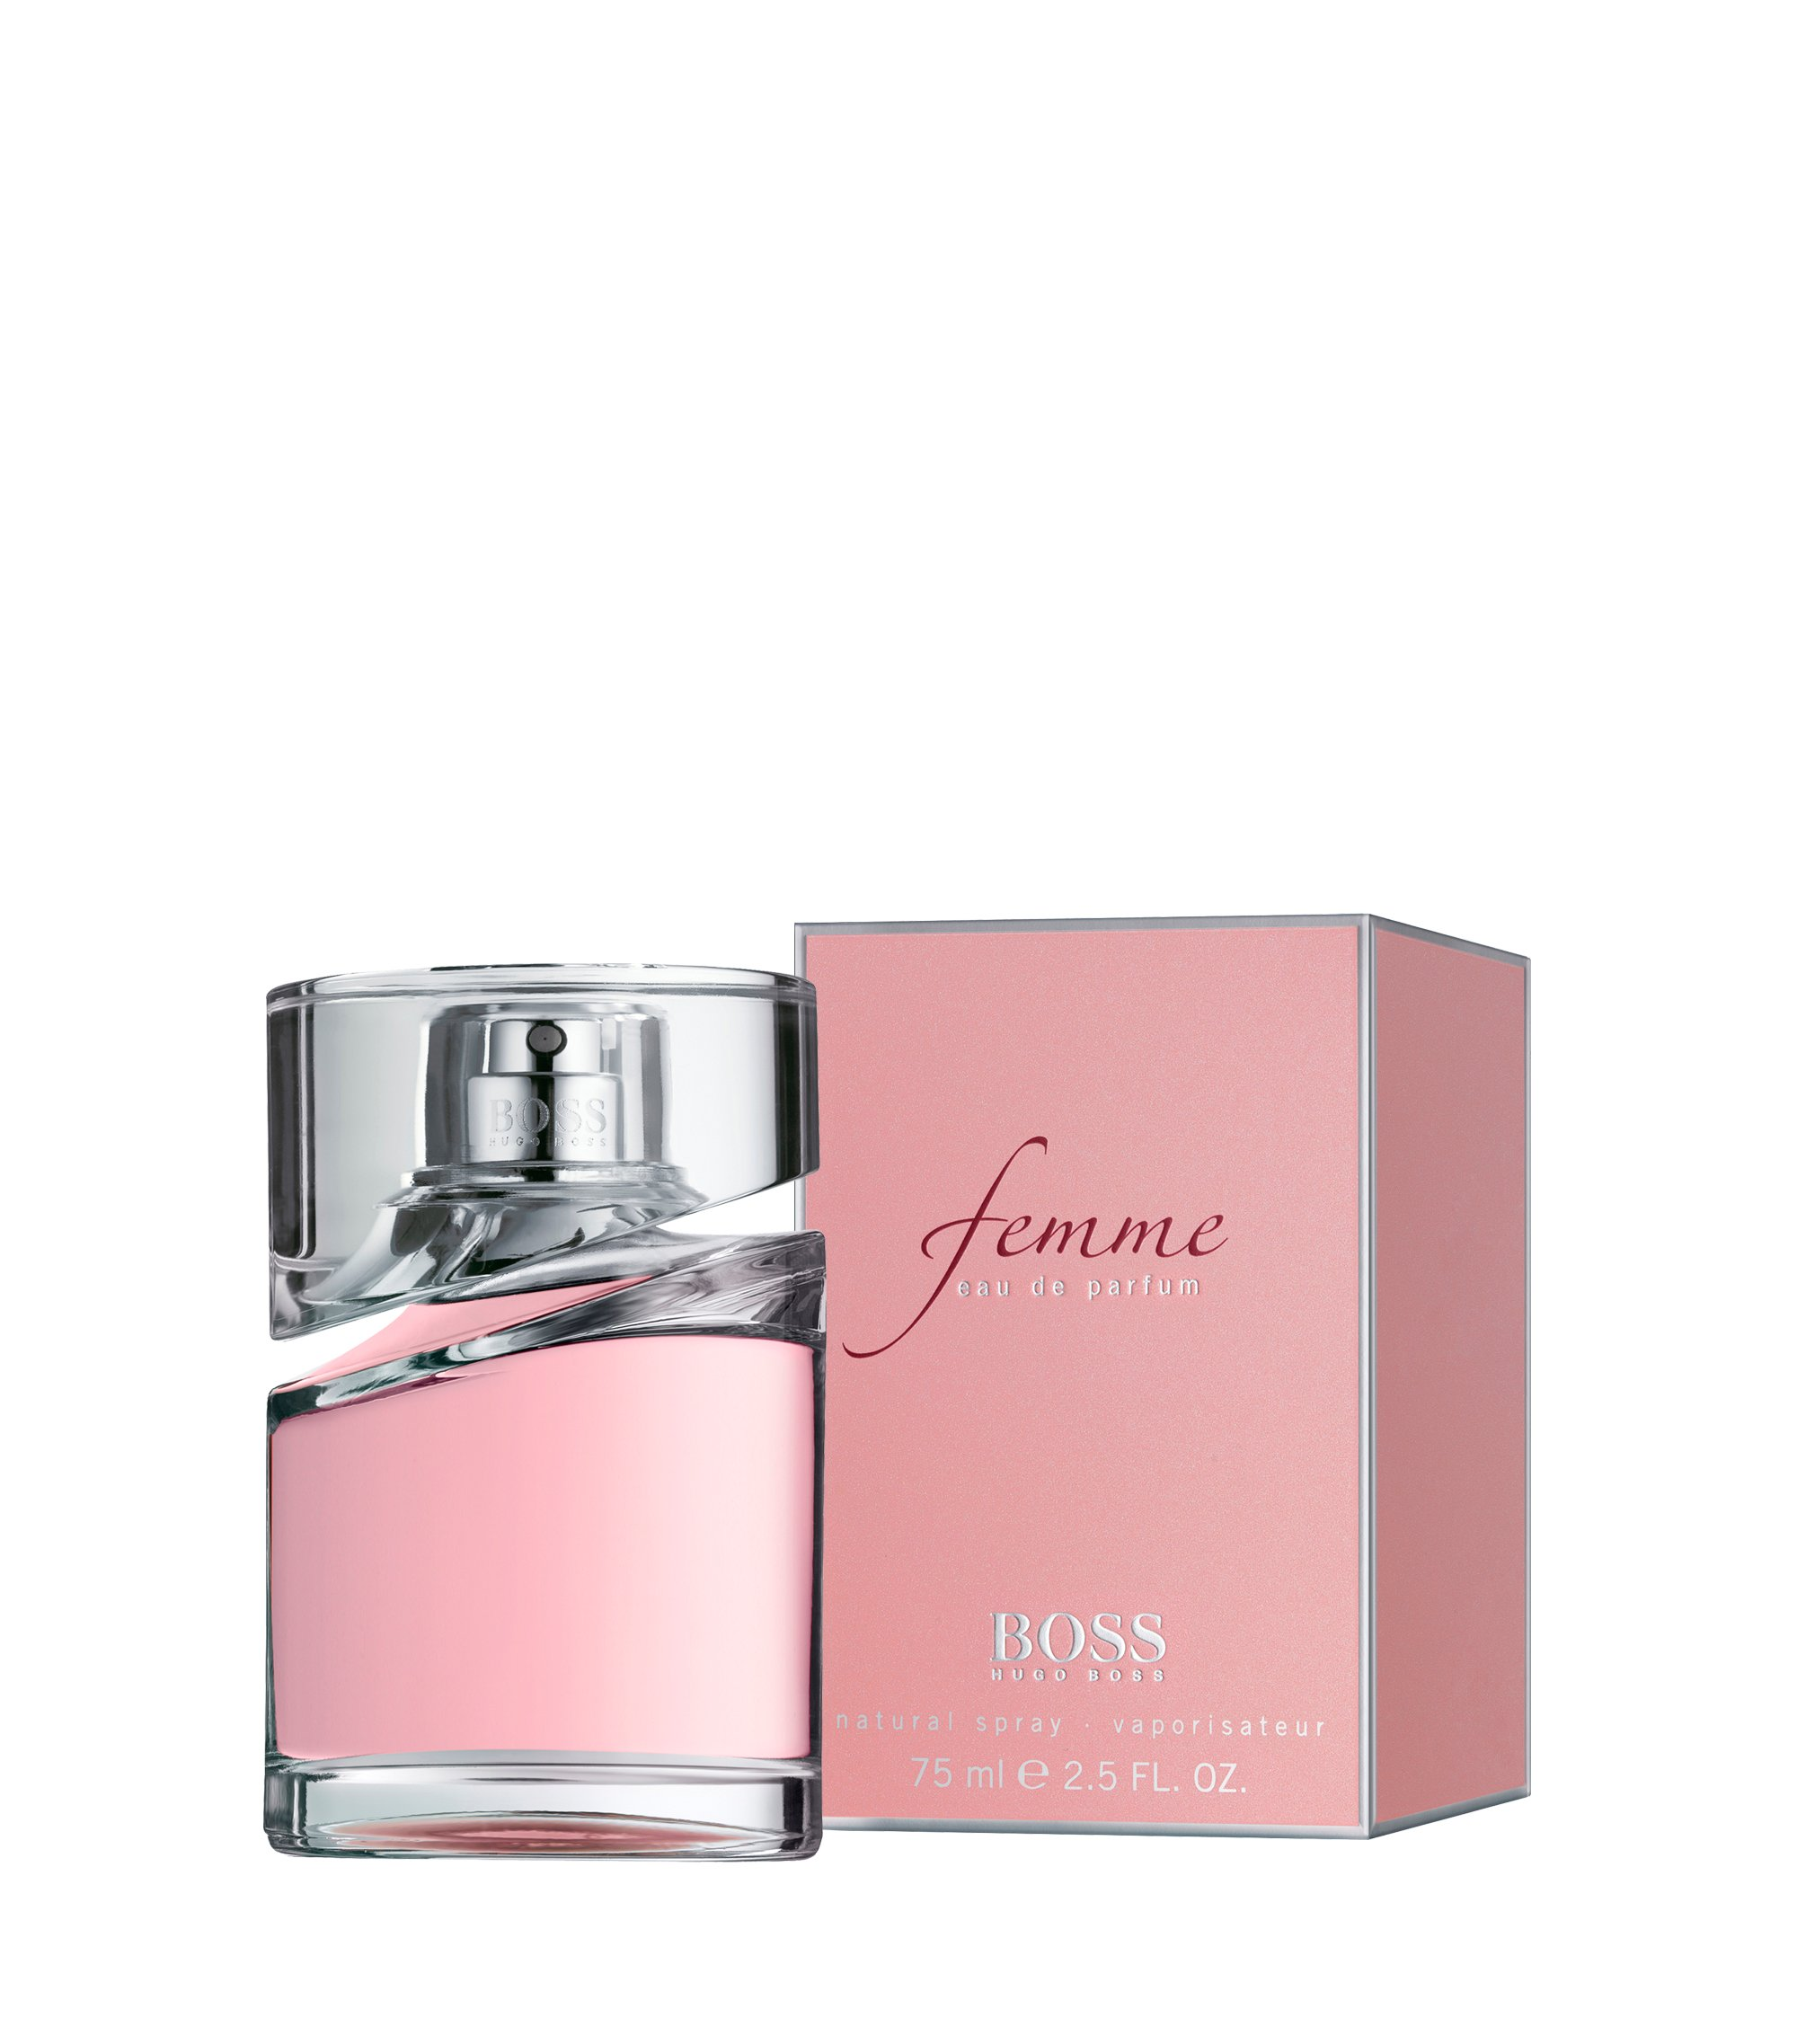 Femme by BOSS eau de parfum 75ml , Assorted-Pre-Pack